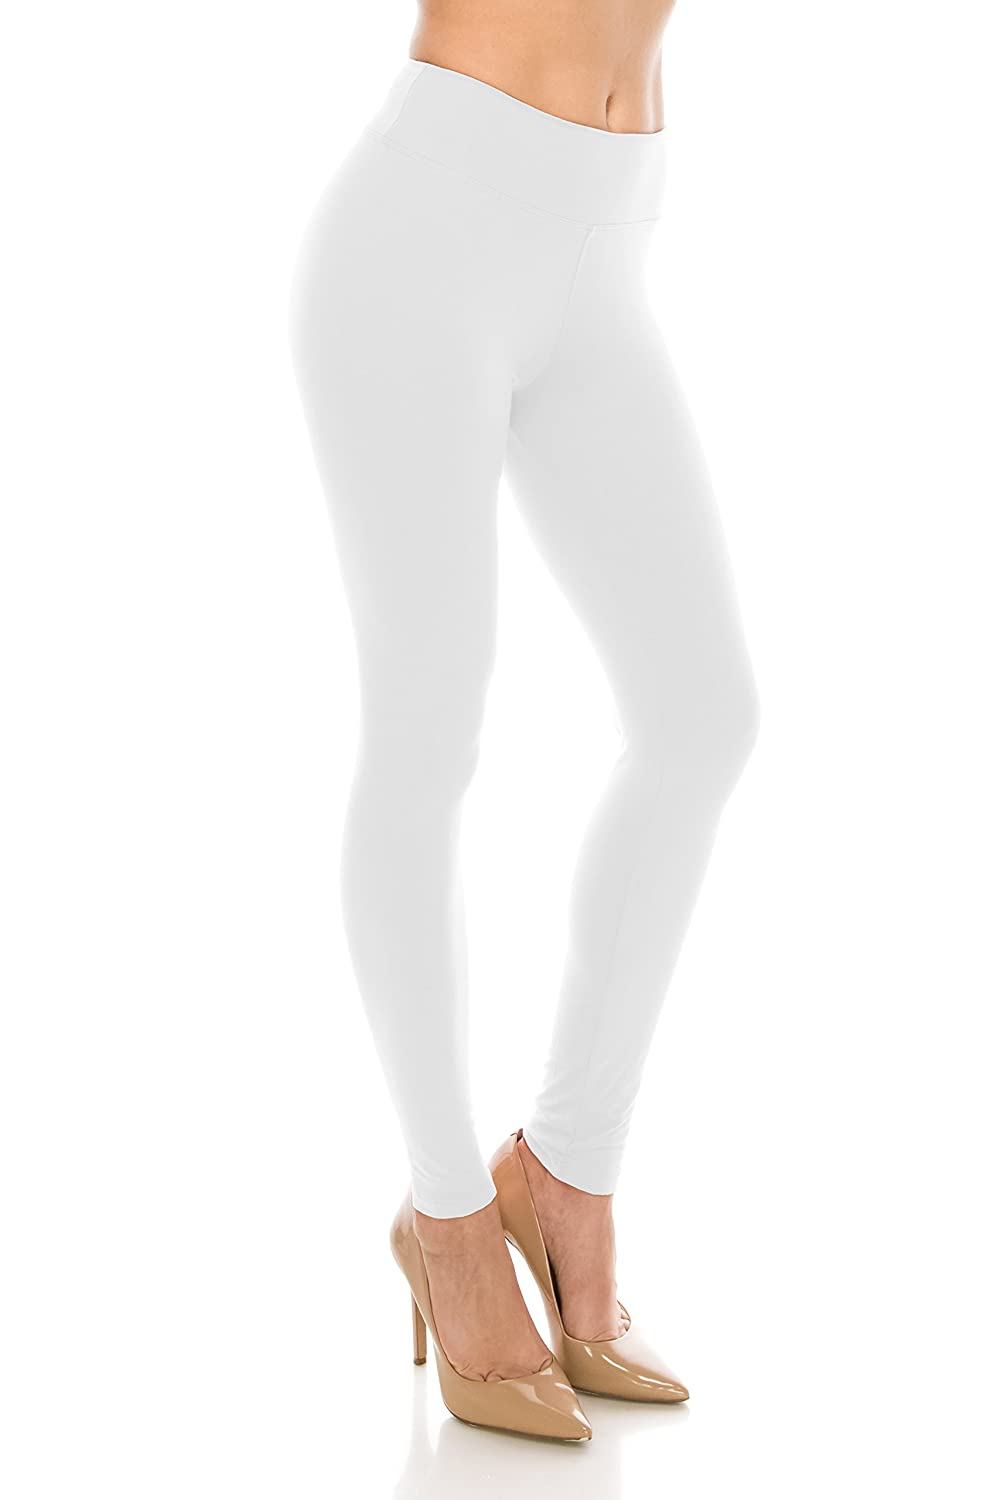 Always Women Solid Basic Soft Stretch High Waist Leggings by Always